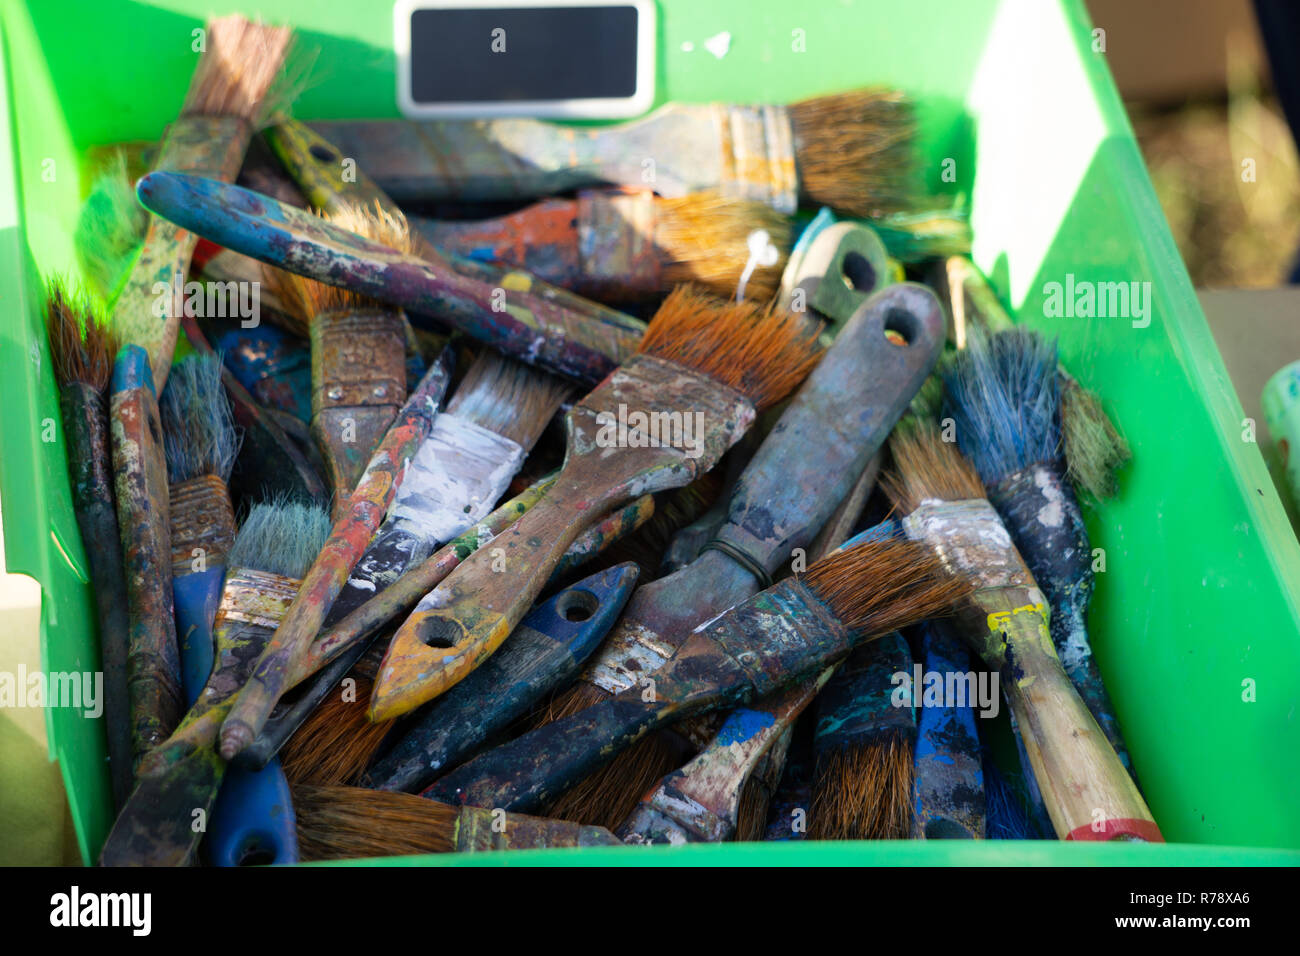 ARTIST's POUCH OF PAINT BRUSHES. Rustic painter s brushes of various shapes and sizes in an old leather pouch attached to one side of a table - Stock Image